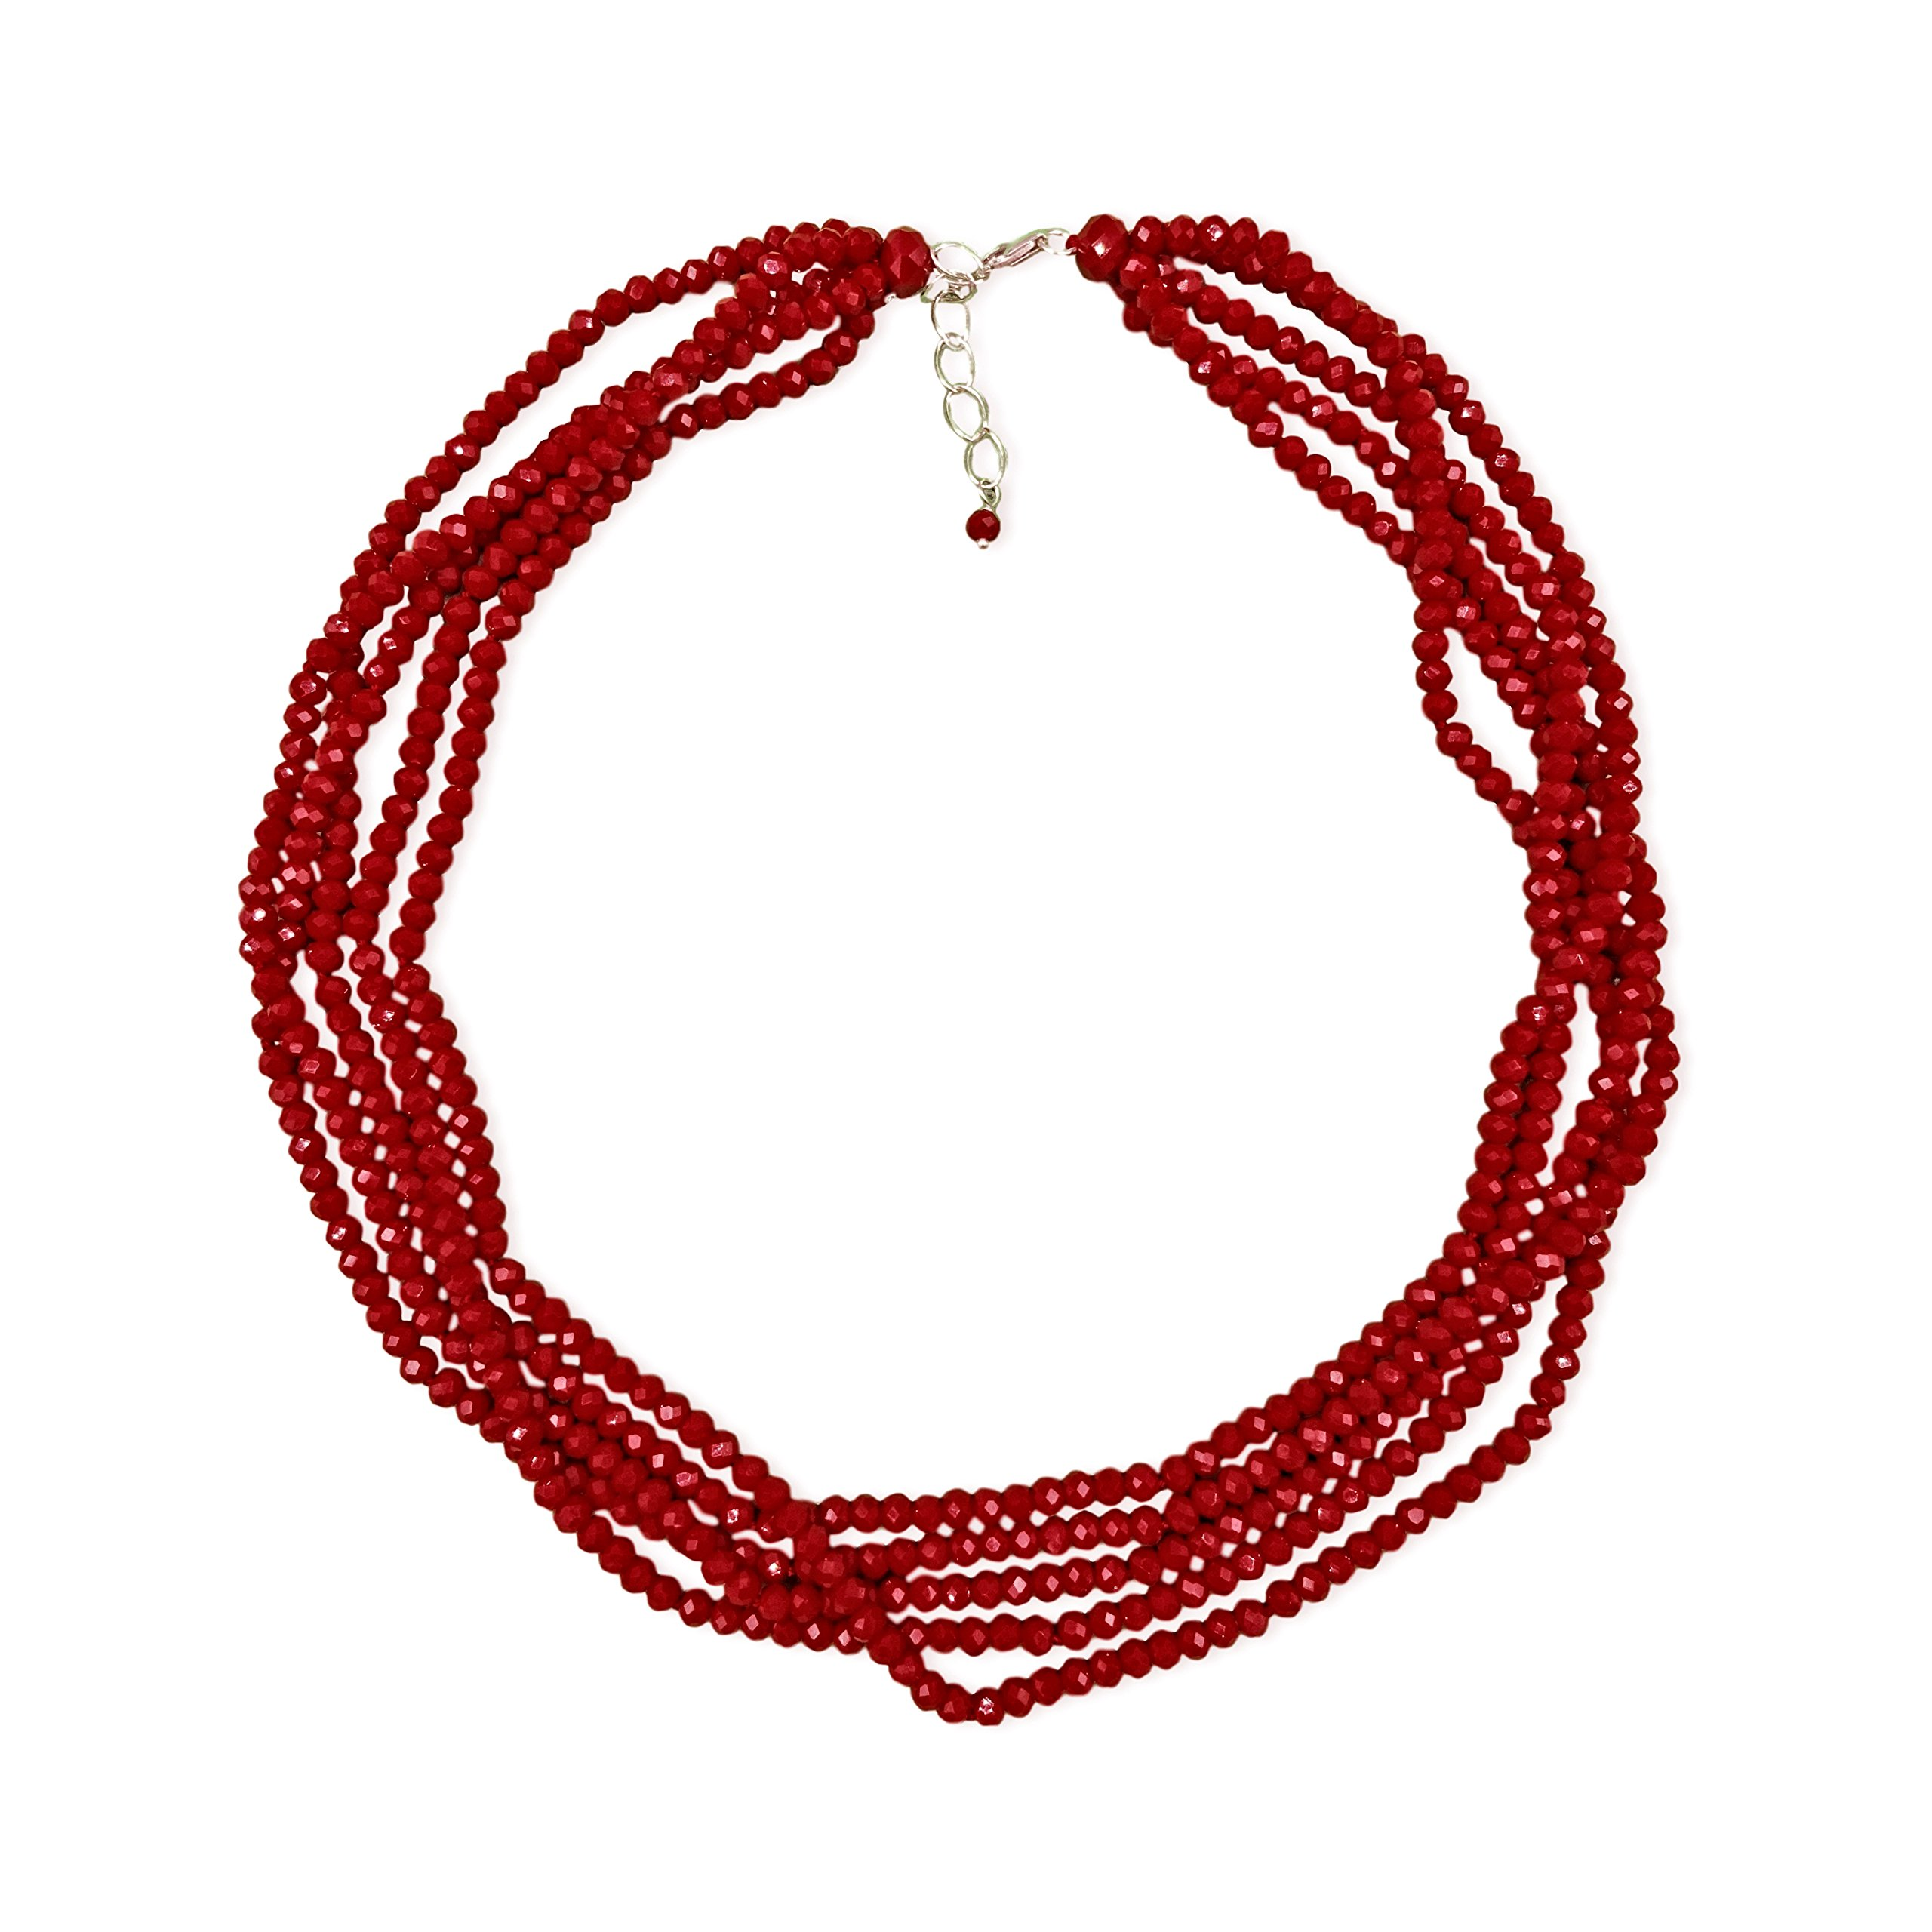 MGR Short Multi-Strand Layered Bib Collar Statement Beaded Crystal Necklace in Garnet Red.